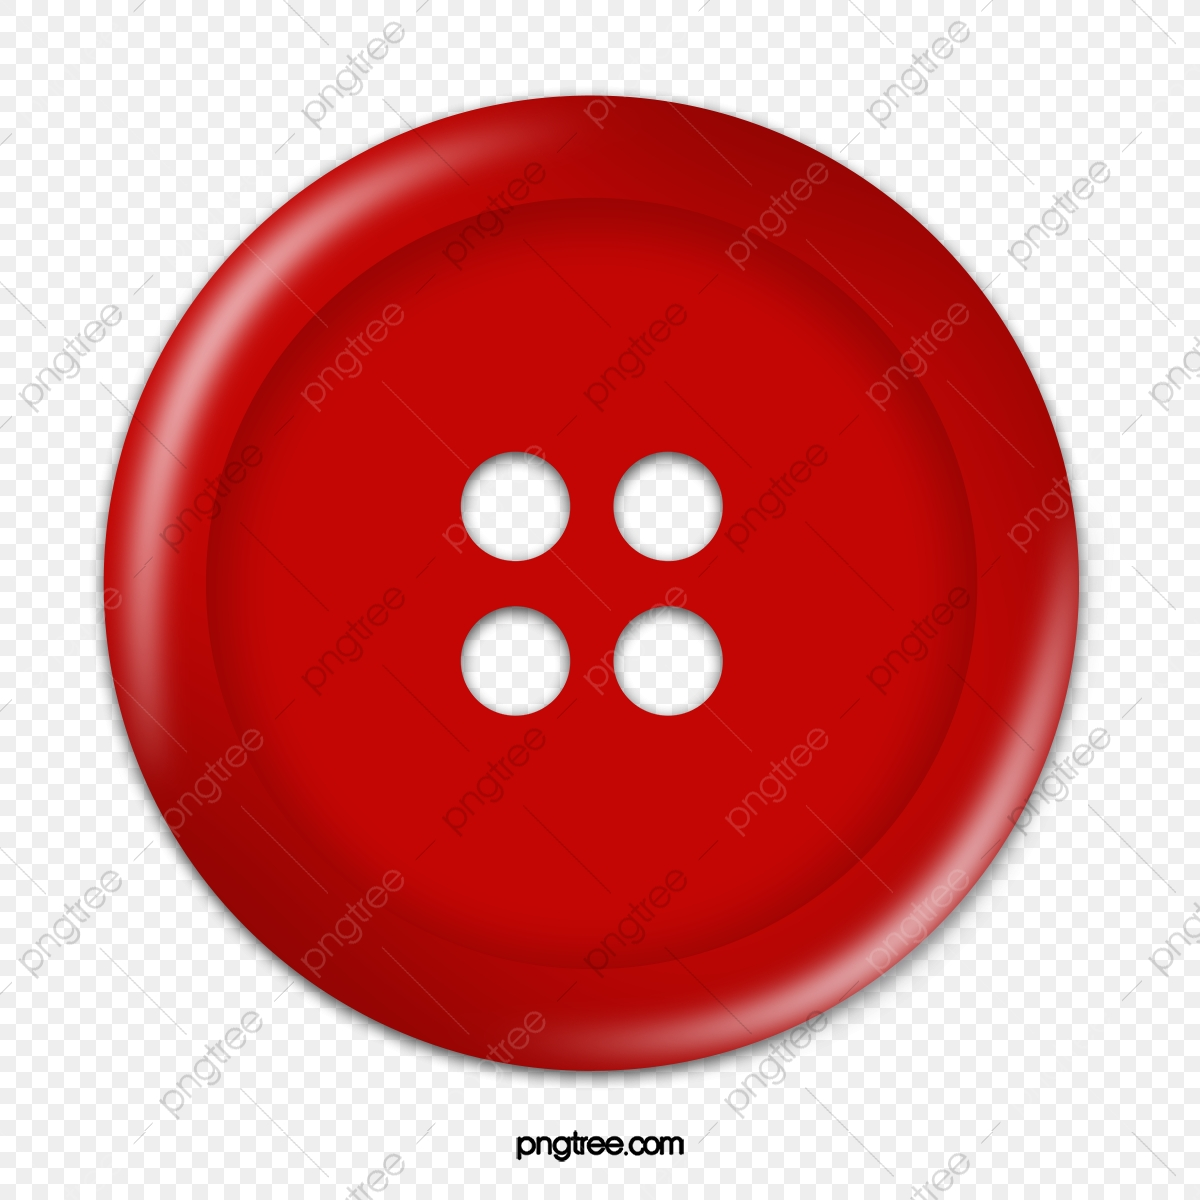 Button clipart. Red clothes png